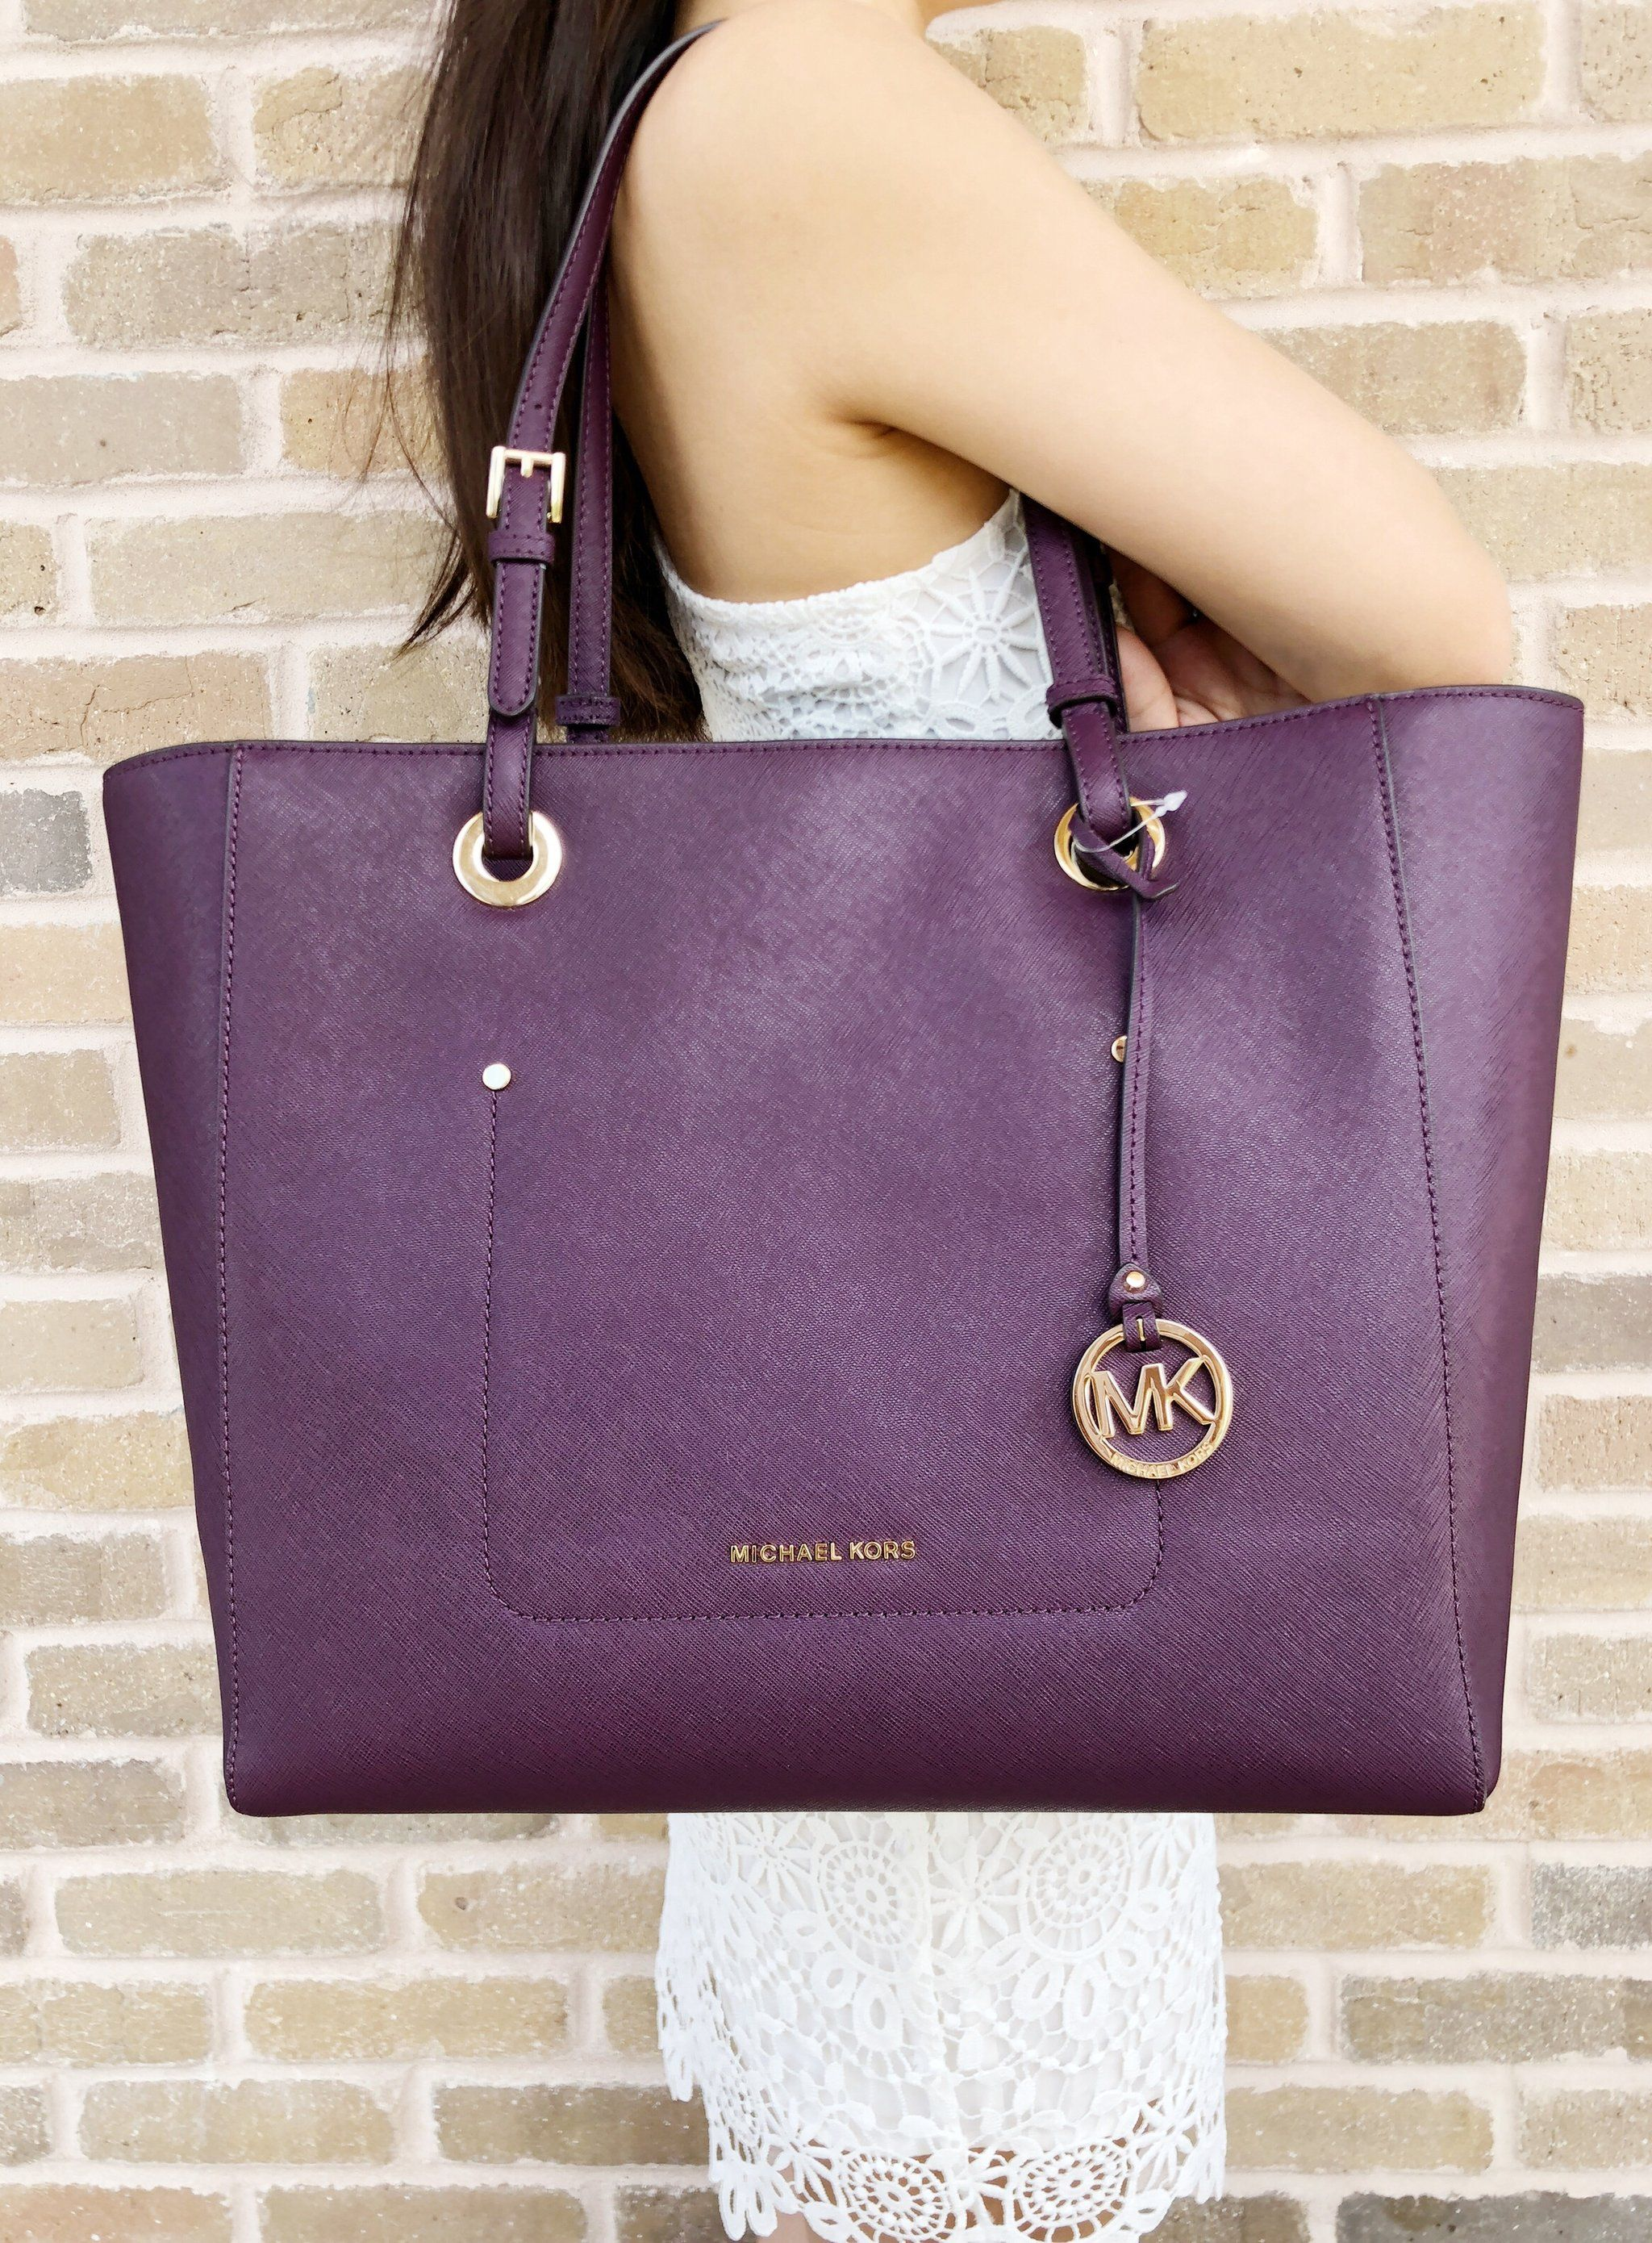 46c5e00e26d3 NWT Michael Kors Walsh Large Saffiano Leather Tote Damson Purple ...